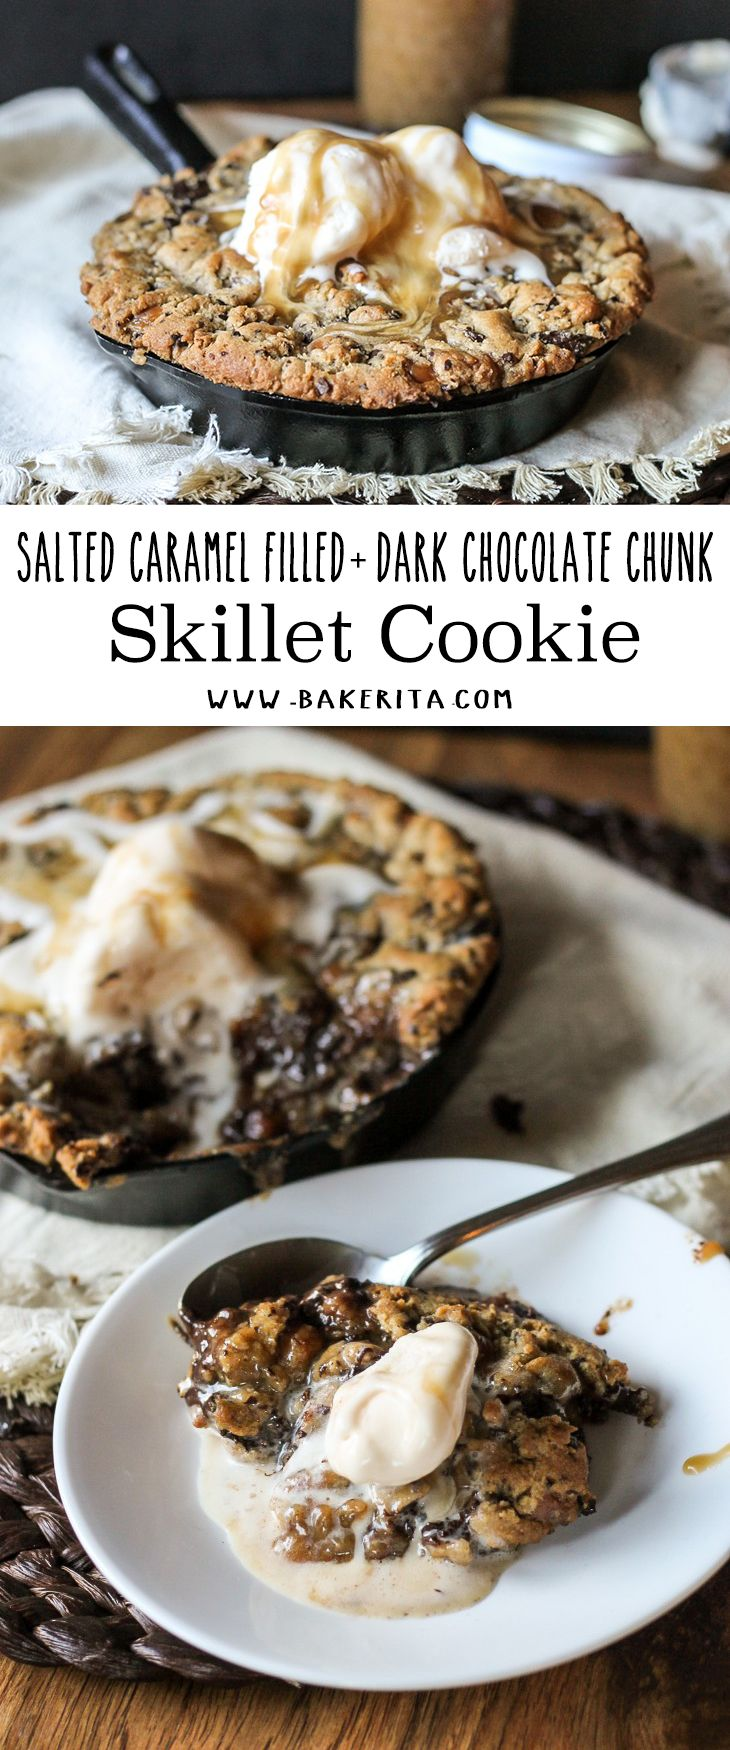 This Salted Caramel Filled Dark Chocolate Chunk Skillet Cookie recipe will fill all of your skillet cookie sundae cravings! Skip the Pizookie and make your own homemade version.